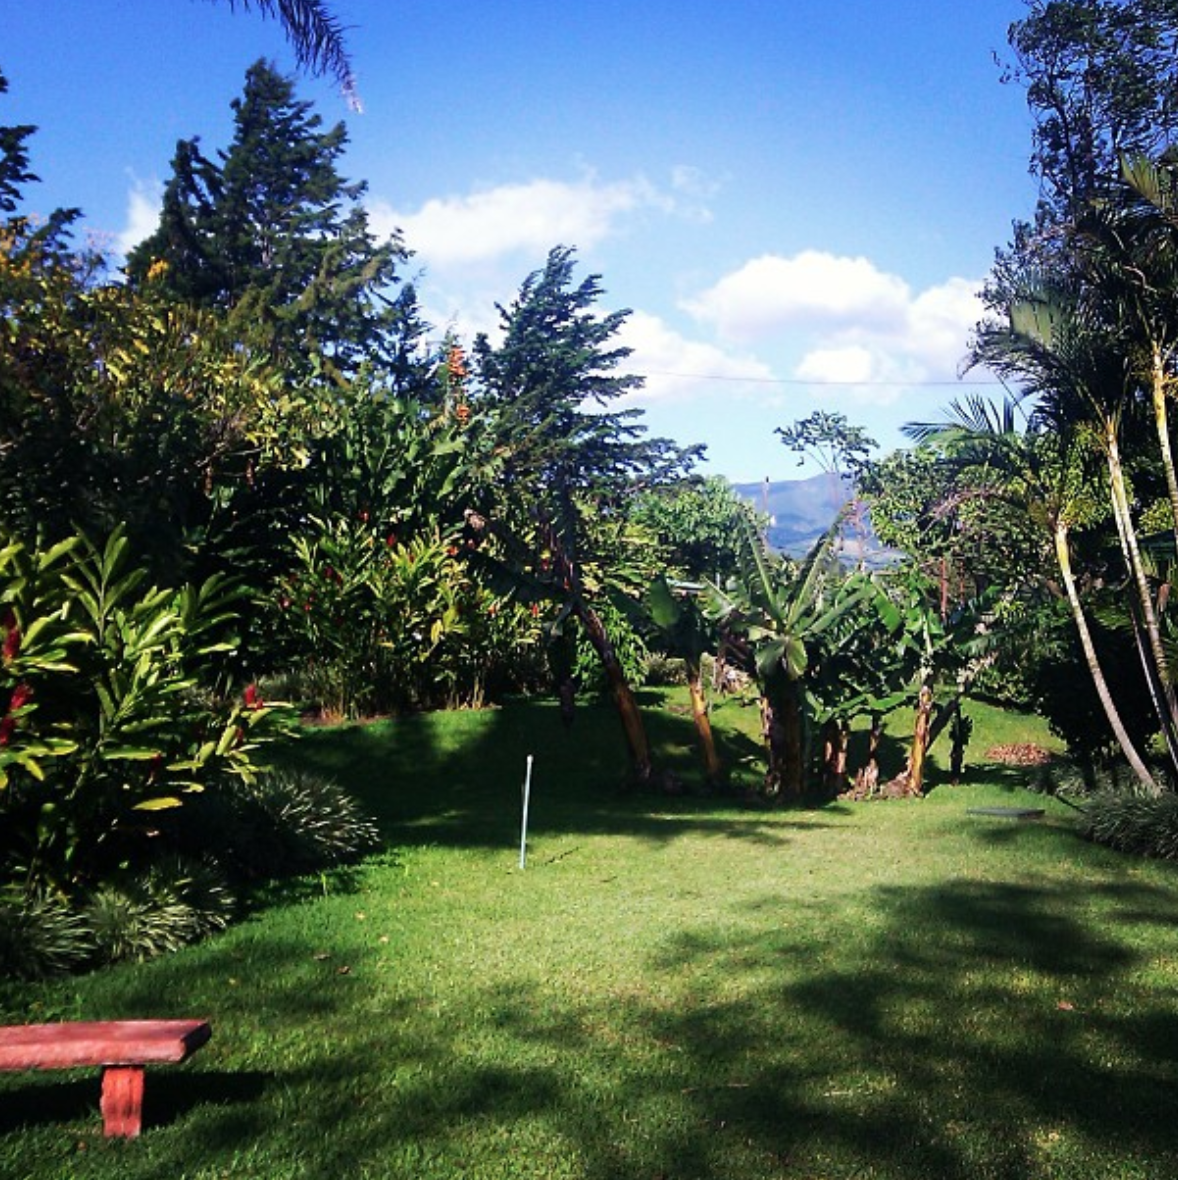 The Doka Estate Coffee Plantation offers a beautiful view for visitors.